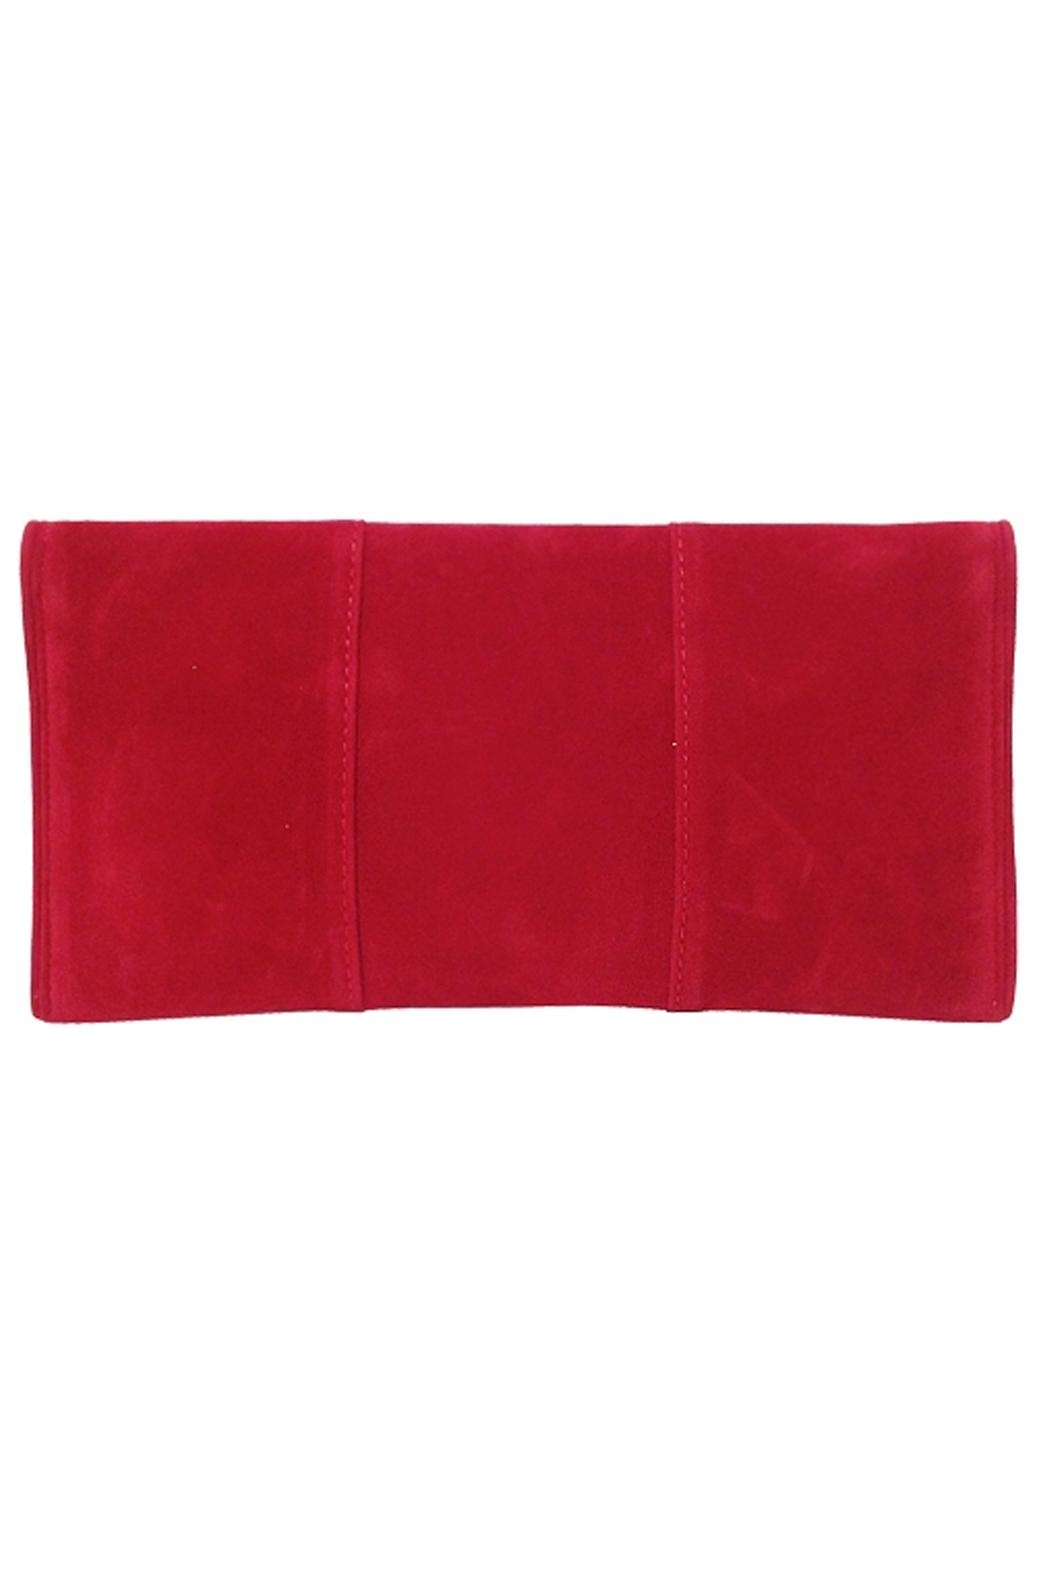 Wild Lilies Jewelry  Red Velvet Clutch - Front Full Image